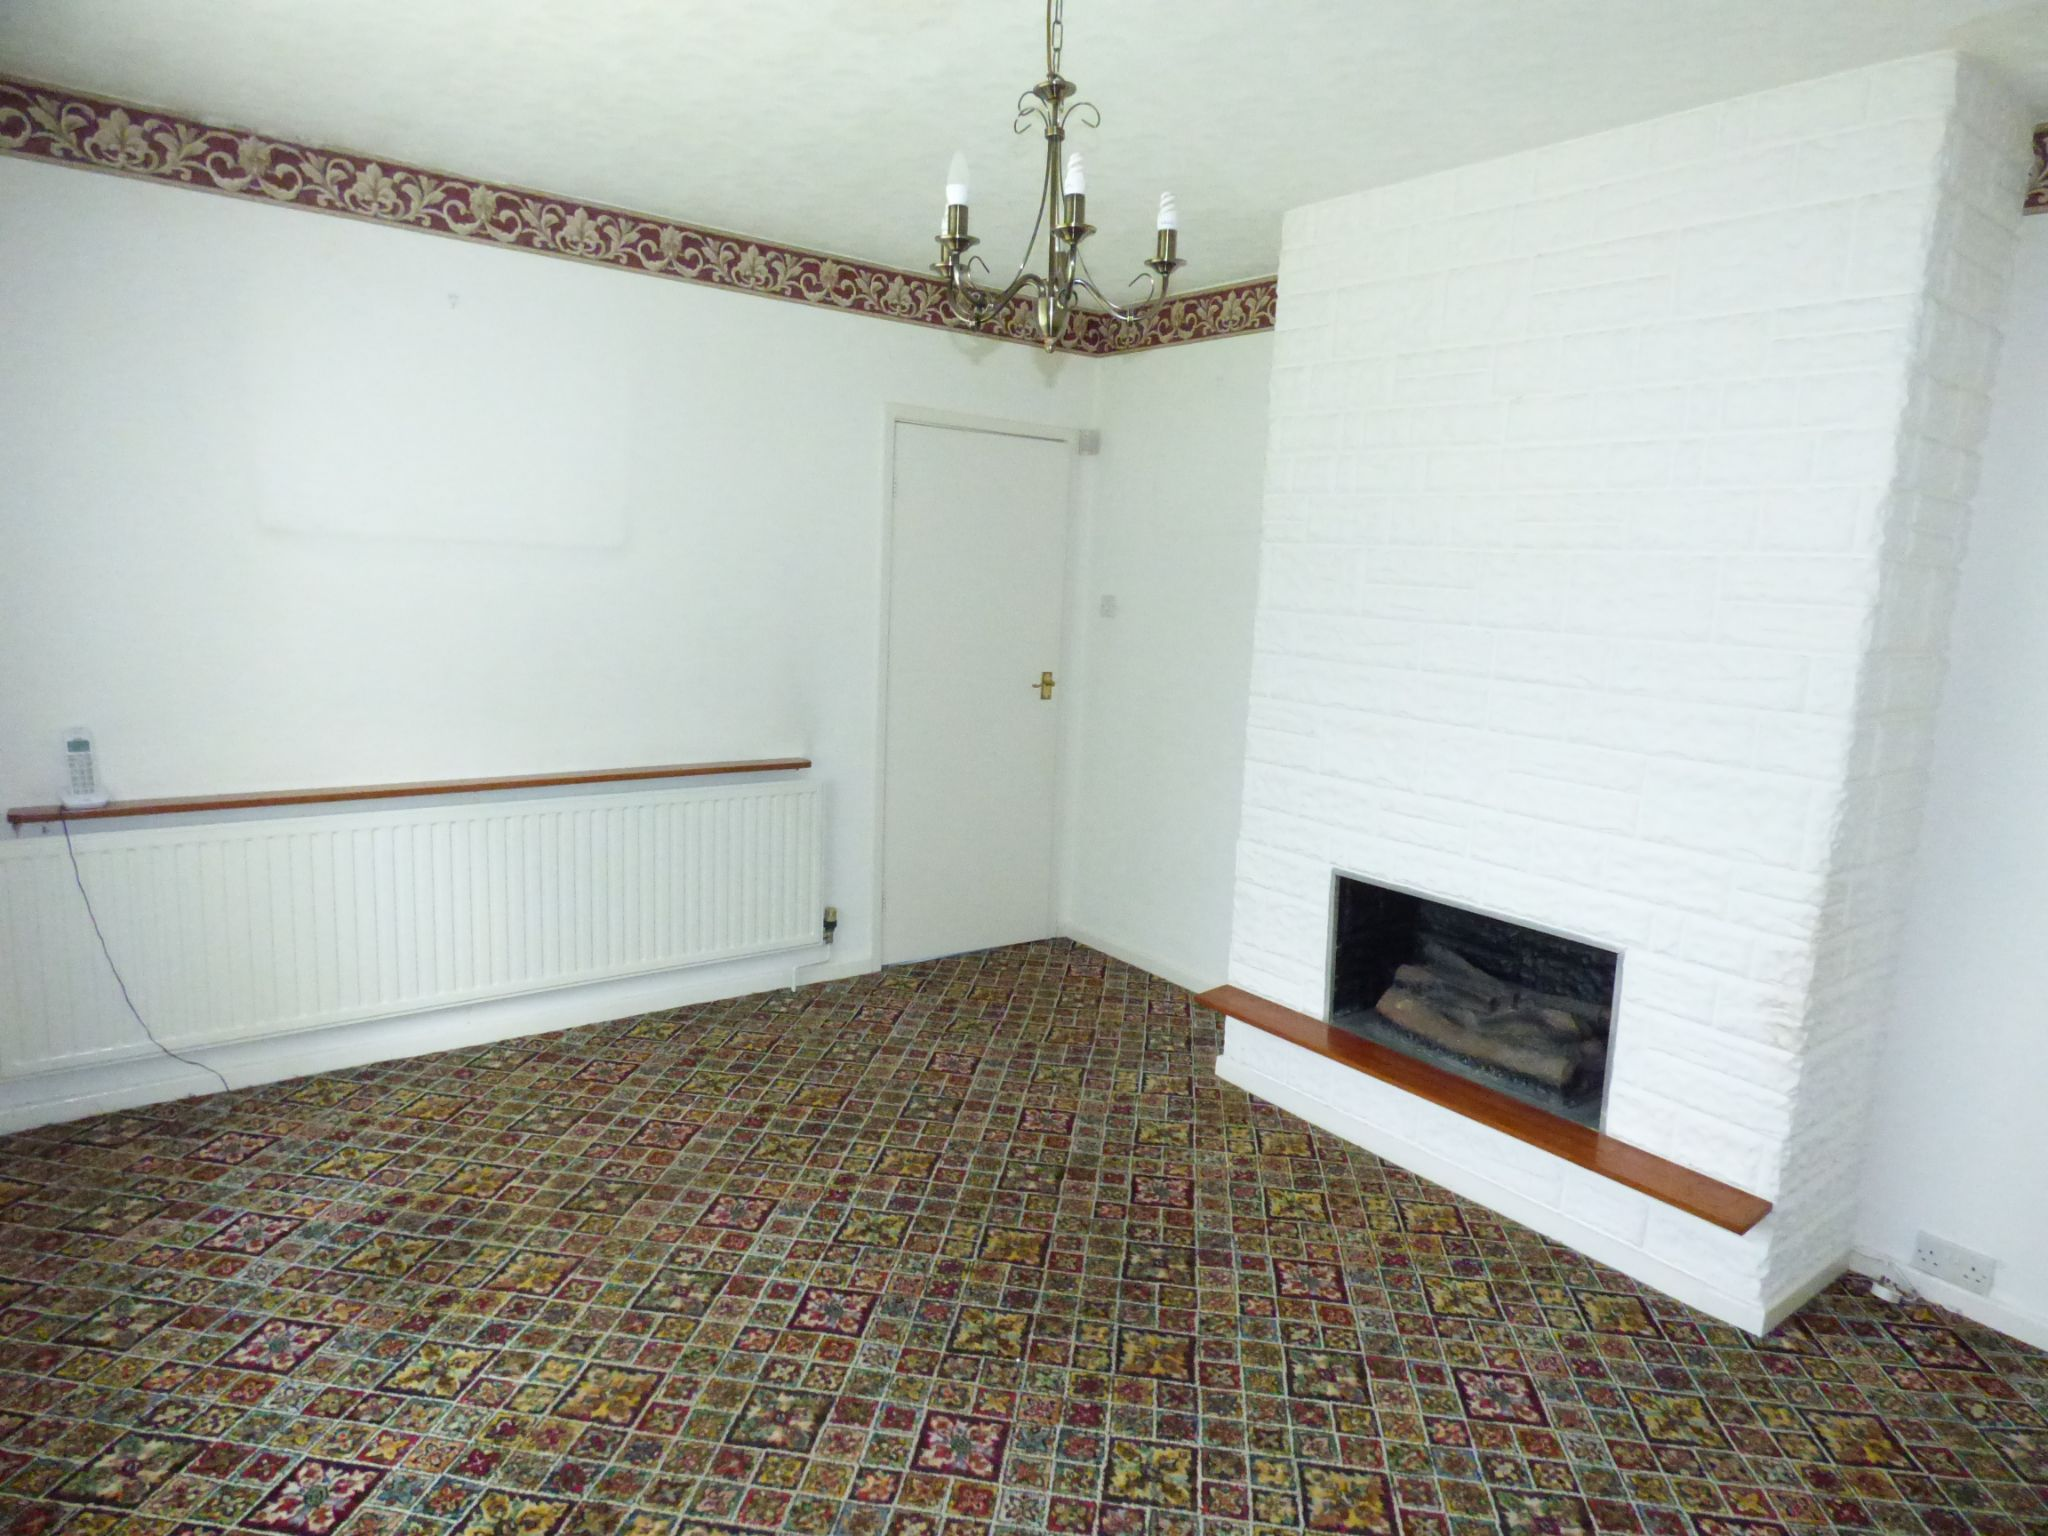 2 Bedroom Detached House For Sale - Photograph 7